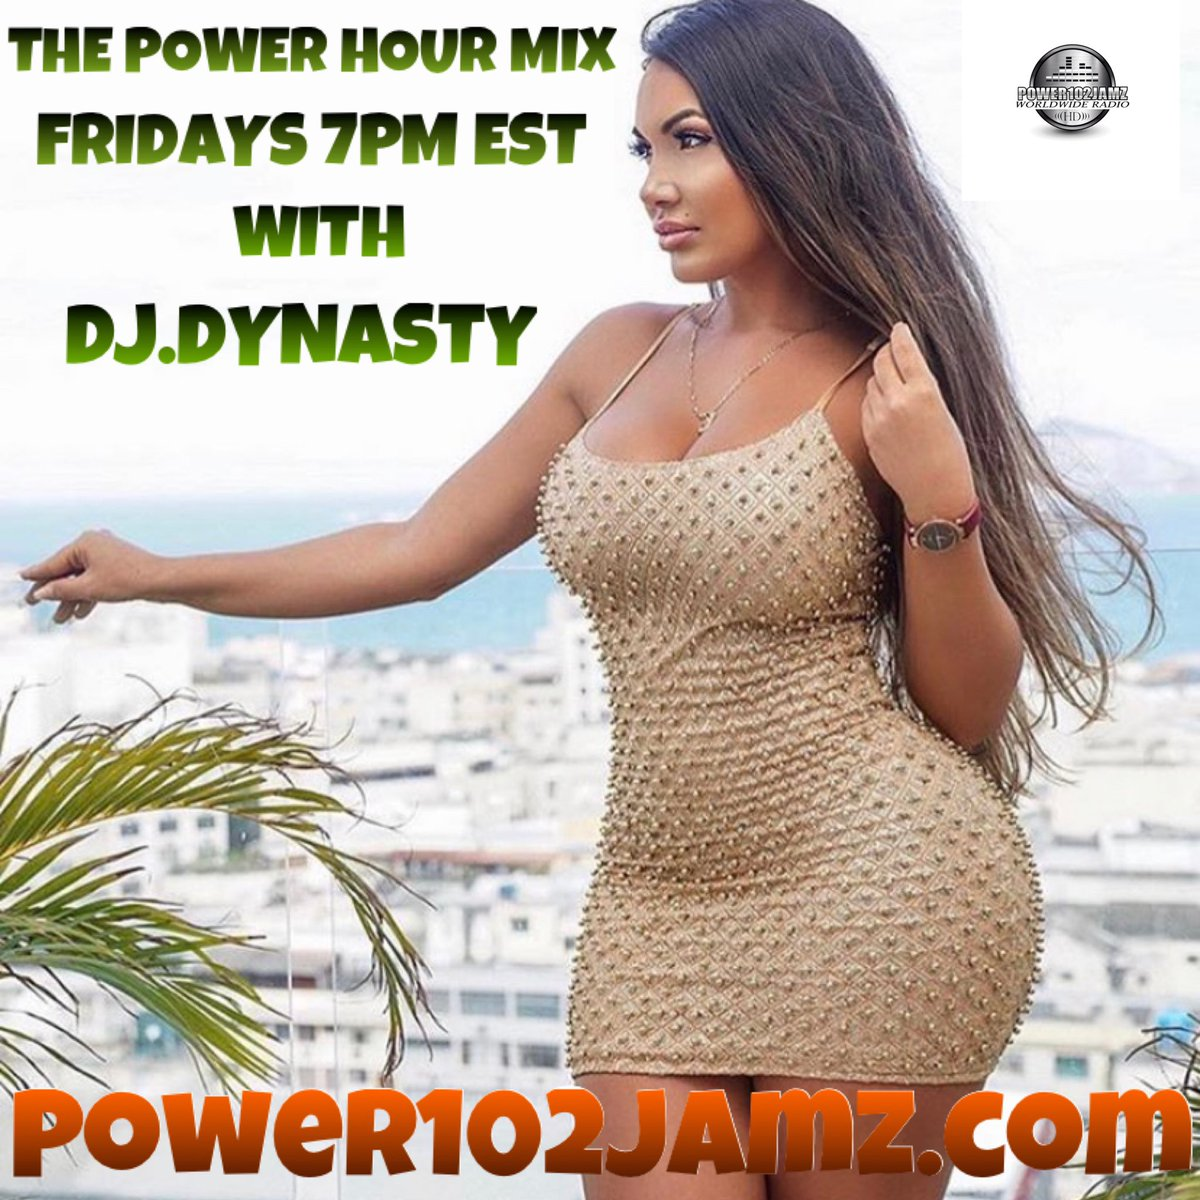 7pm est time it's show time tune in today download the Power102jamz app for free or just log on to https://t.co/N3PqhG1JSh https://t.co/lWSawVwbfz